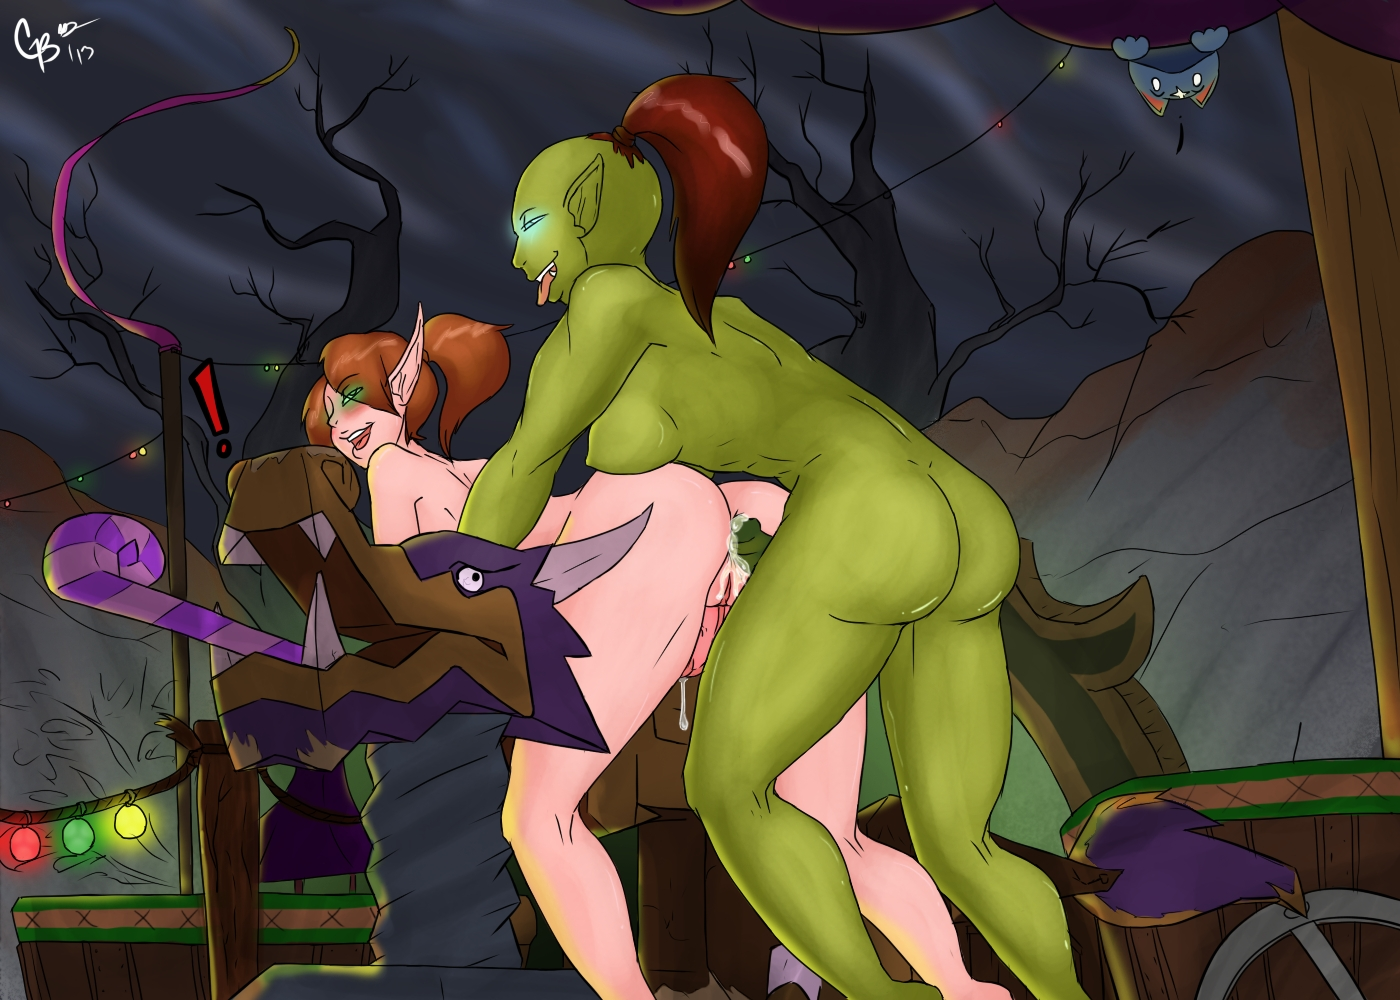 Orcs and elves e-hentai exploited curvy porn star